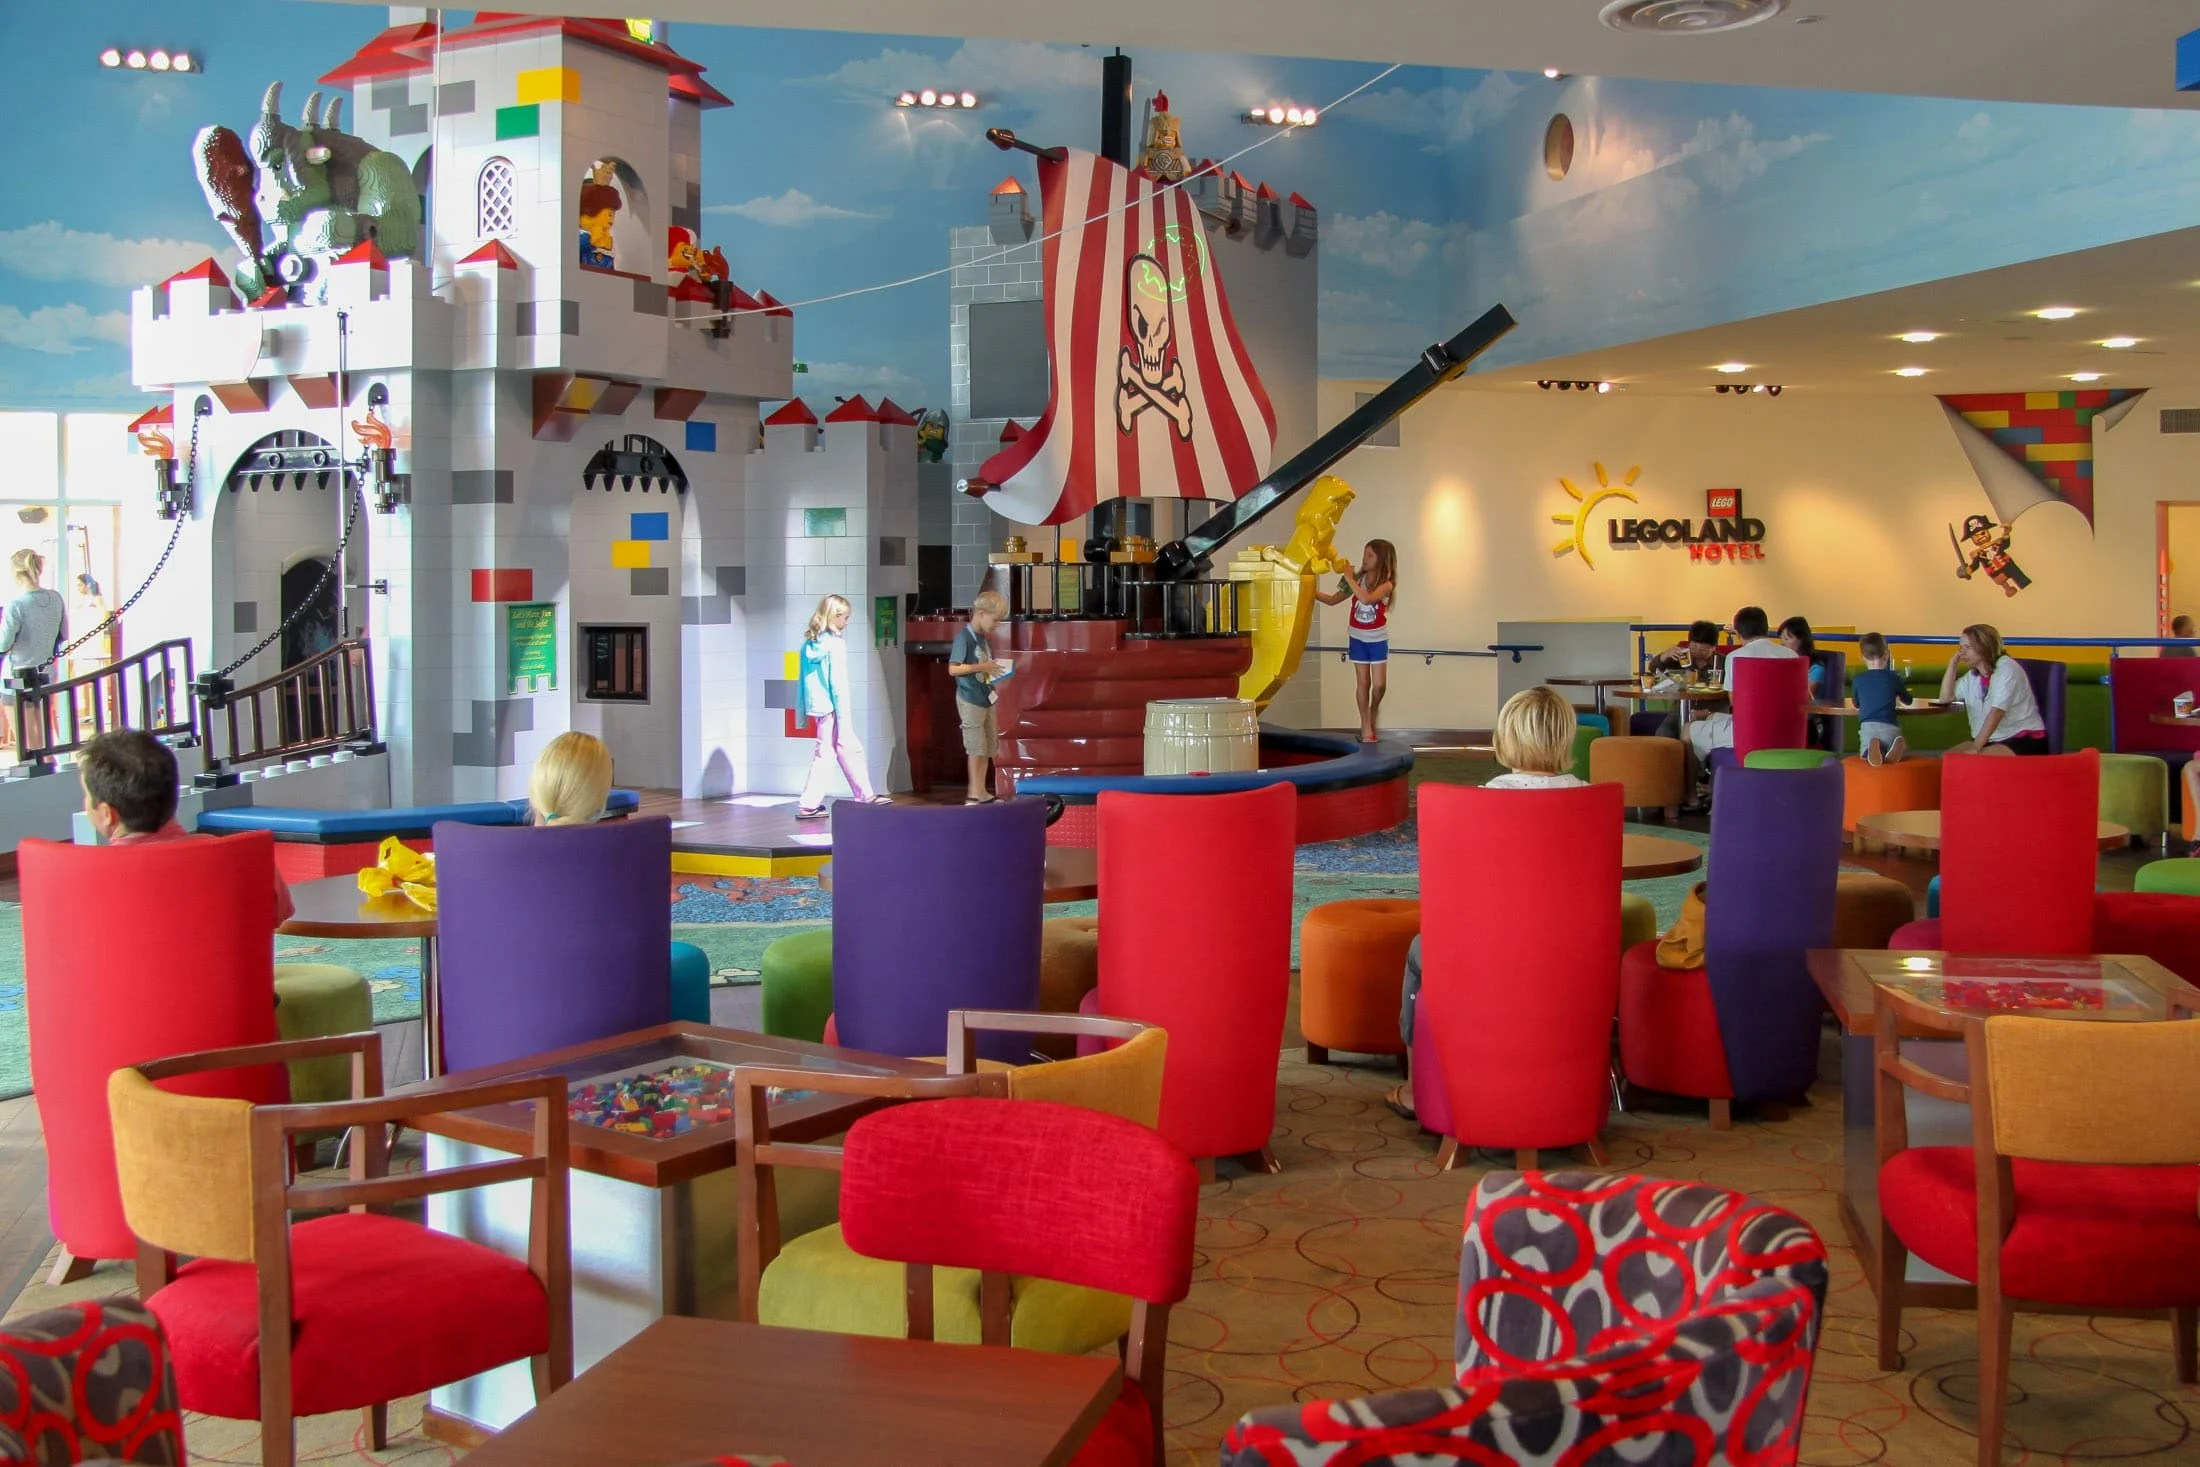 pool floating lounge chairs high review of legoland hotel in california | san diego hotels